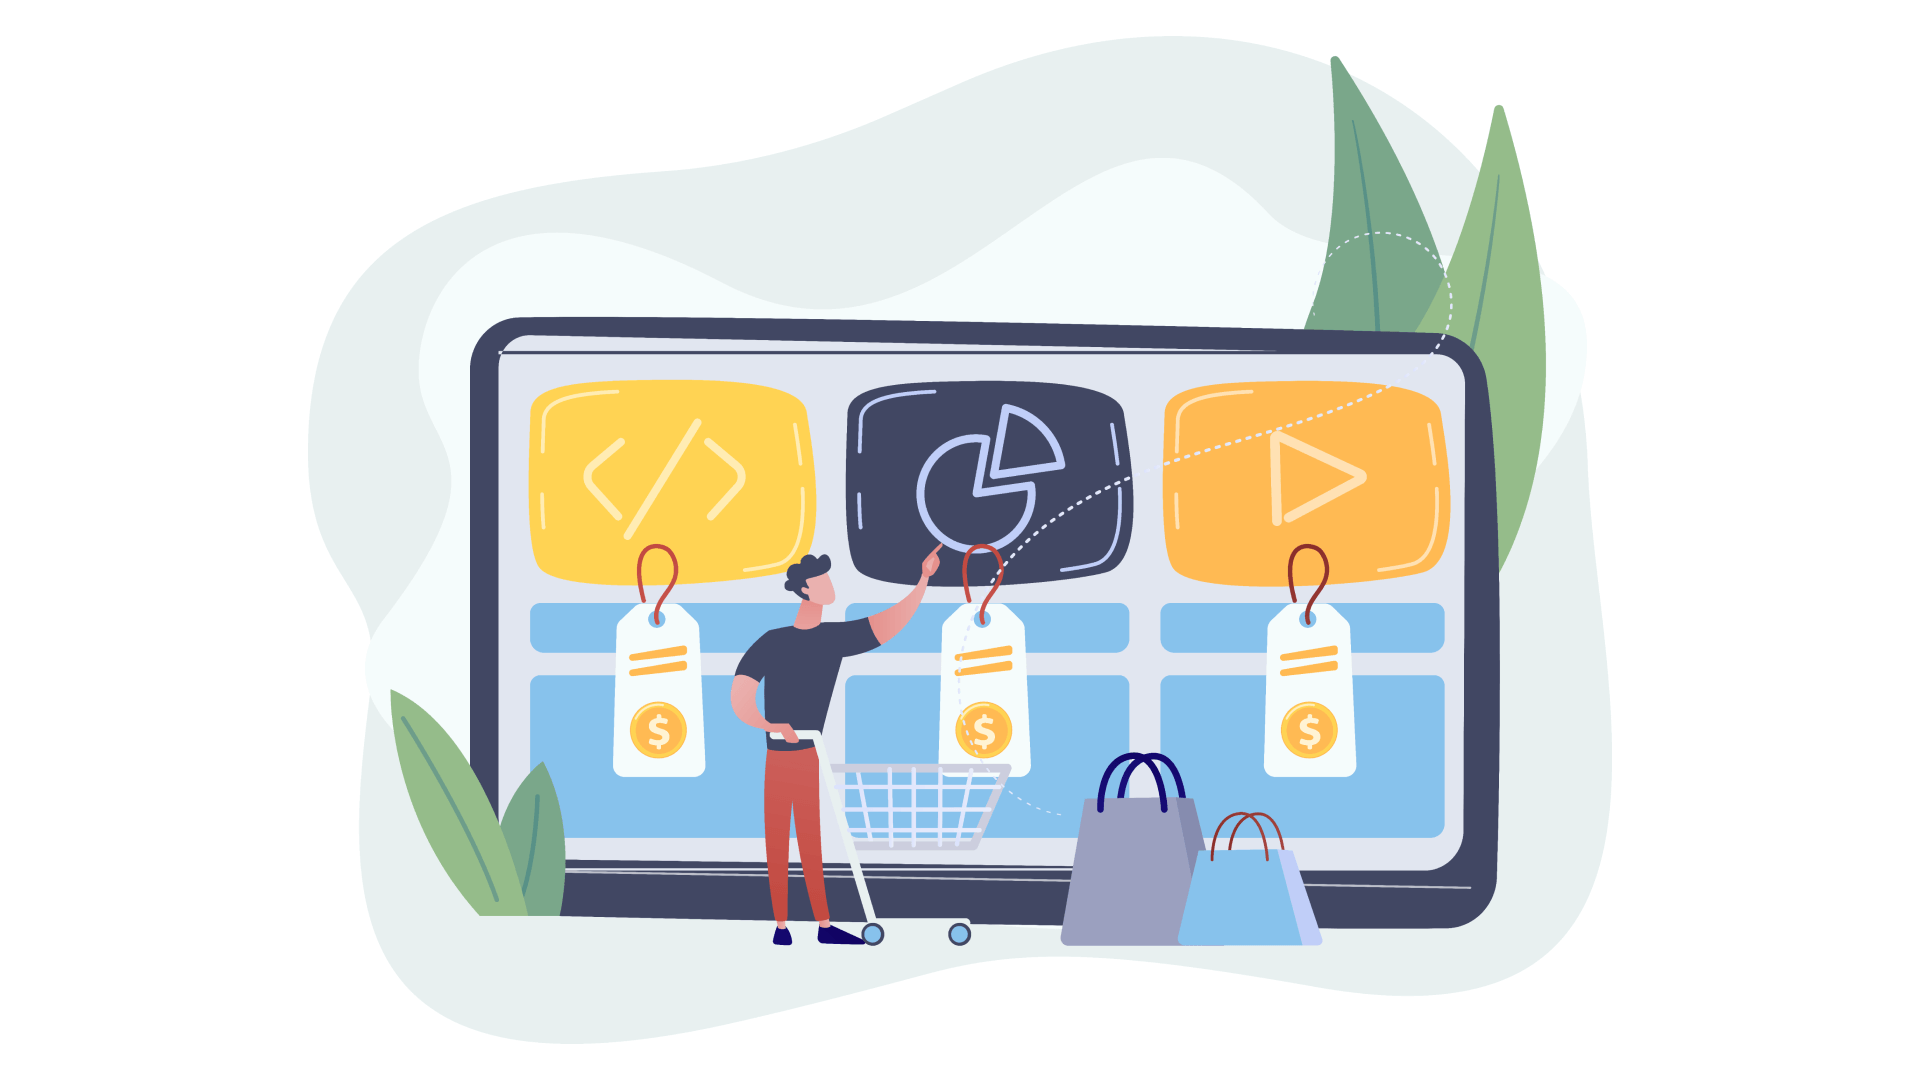 Core features of NFT marketplace: things that make this type of online platform extraordinary and attractive for both buyers and sellers.